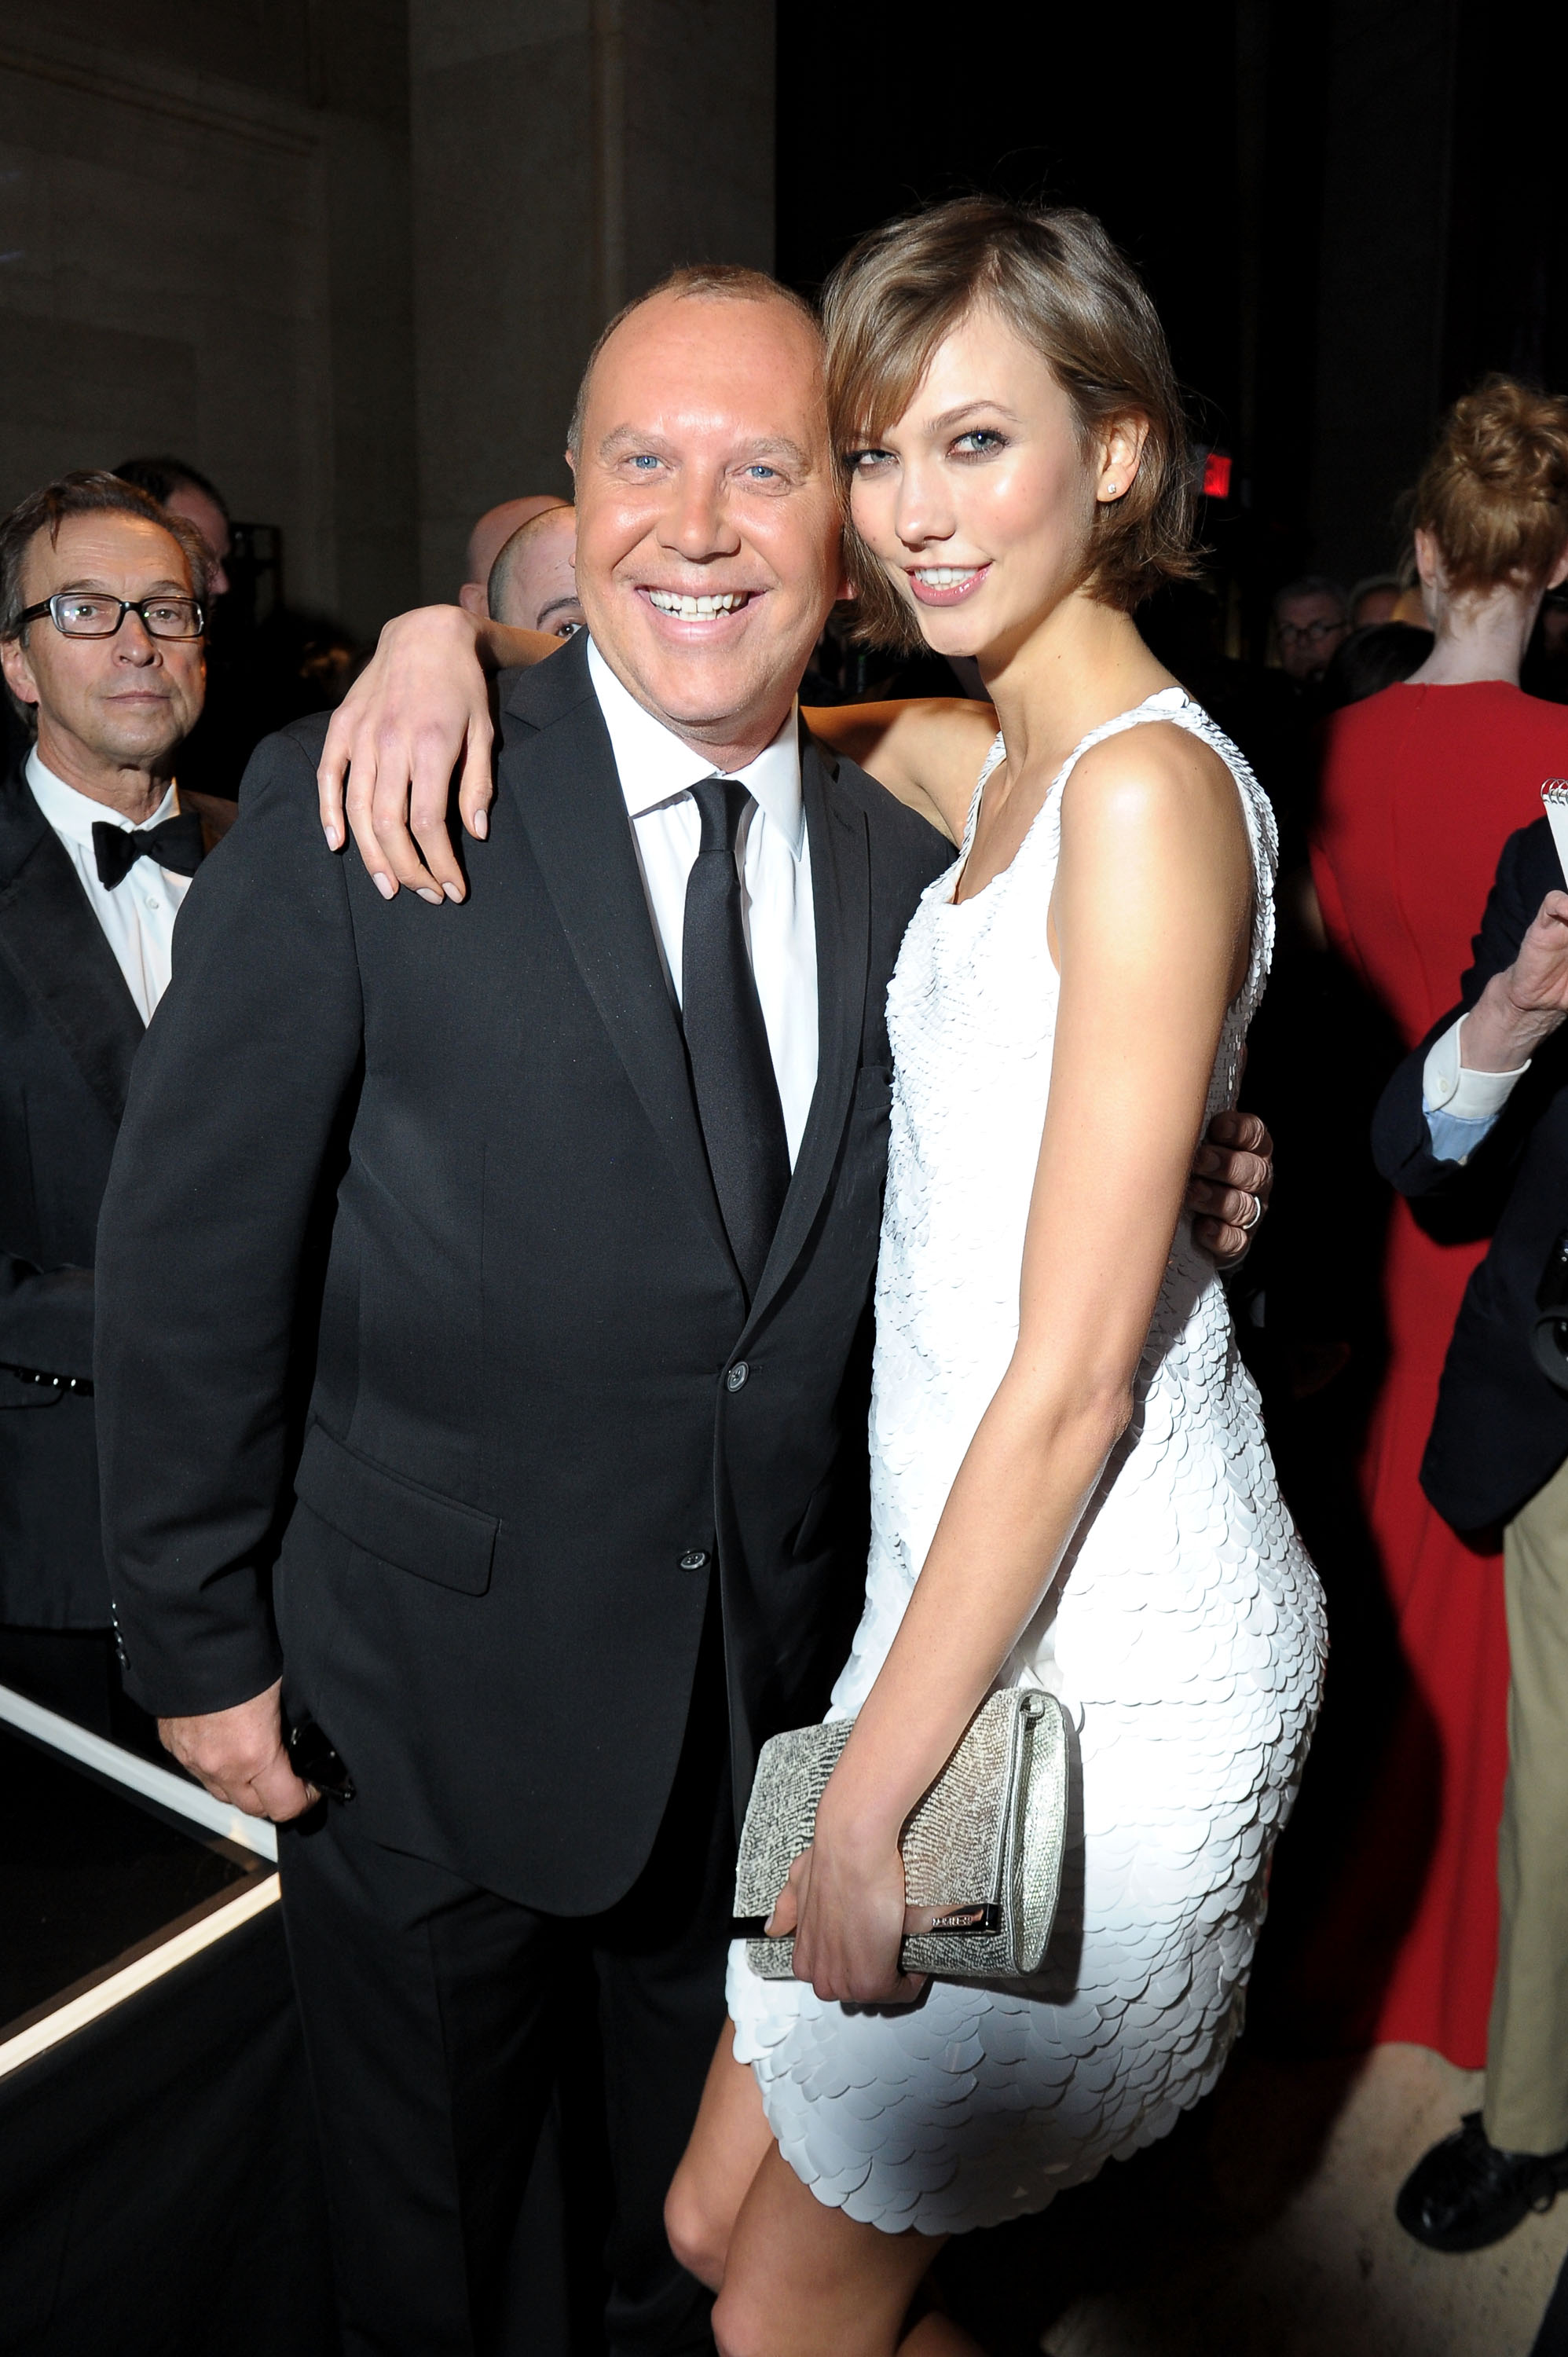 Karlie Kloss got chummy with Michael Kors at the amfAR New York Gala on Wednesday.